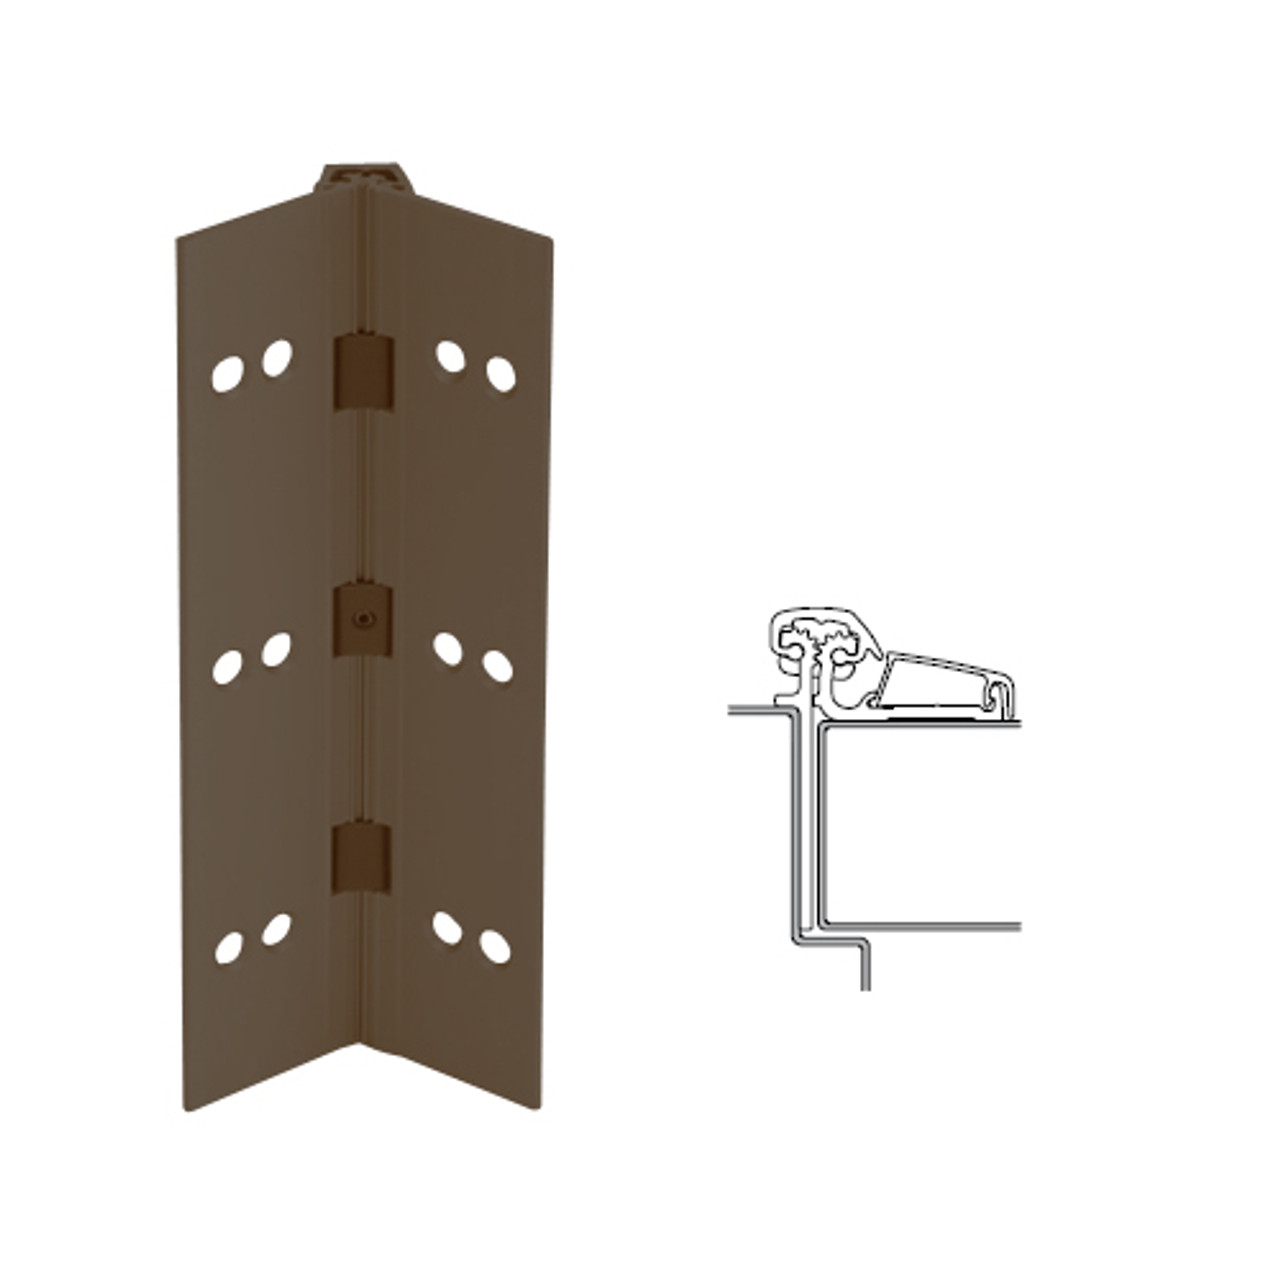 054XY-313AN-85-SECWDWD IVES Adjustable Half Surface Continuous Geared Hinges with Security Screws - Hex Pin Drive in Dark Bronze Anodized